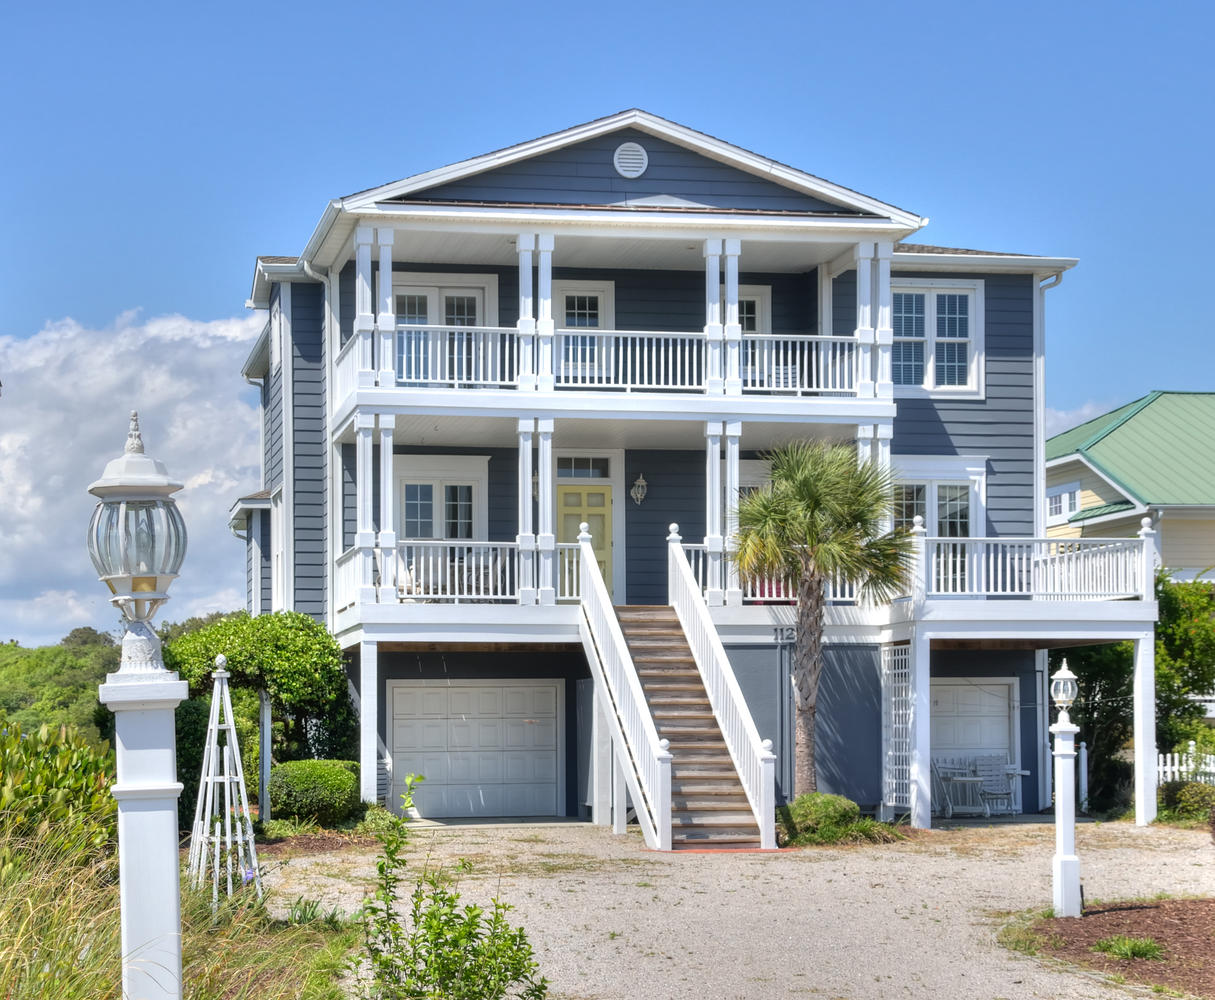 Single Family Home for Sale at Incredible ICW Island Home 112 Golden Dune Way Lot #32 Holden Beach, North Carolina, 28462 United States